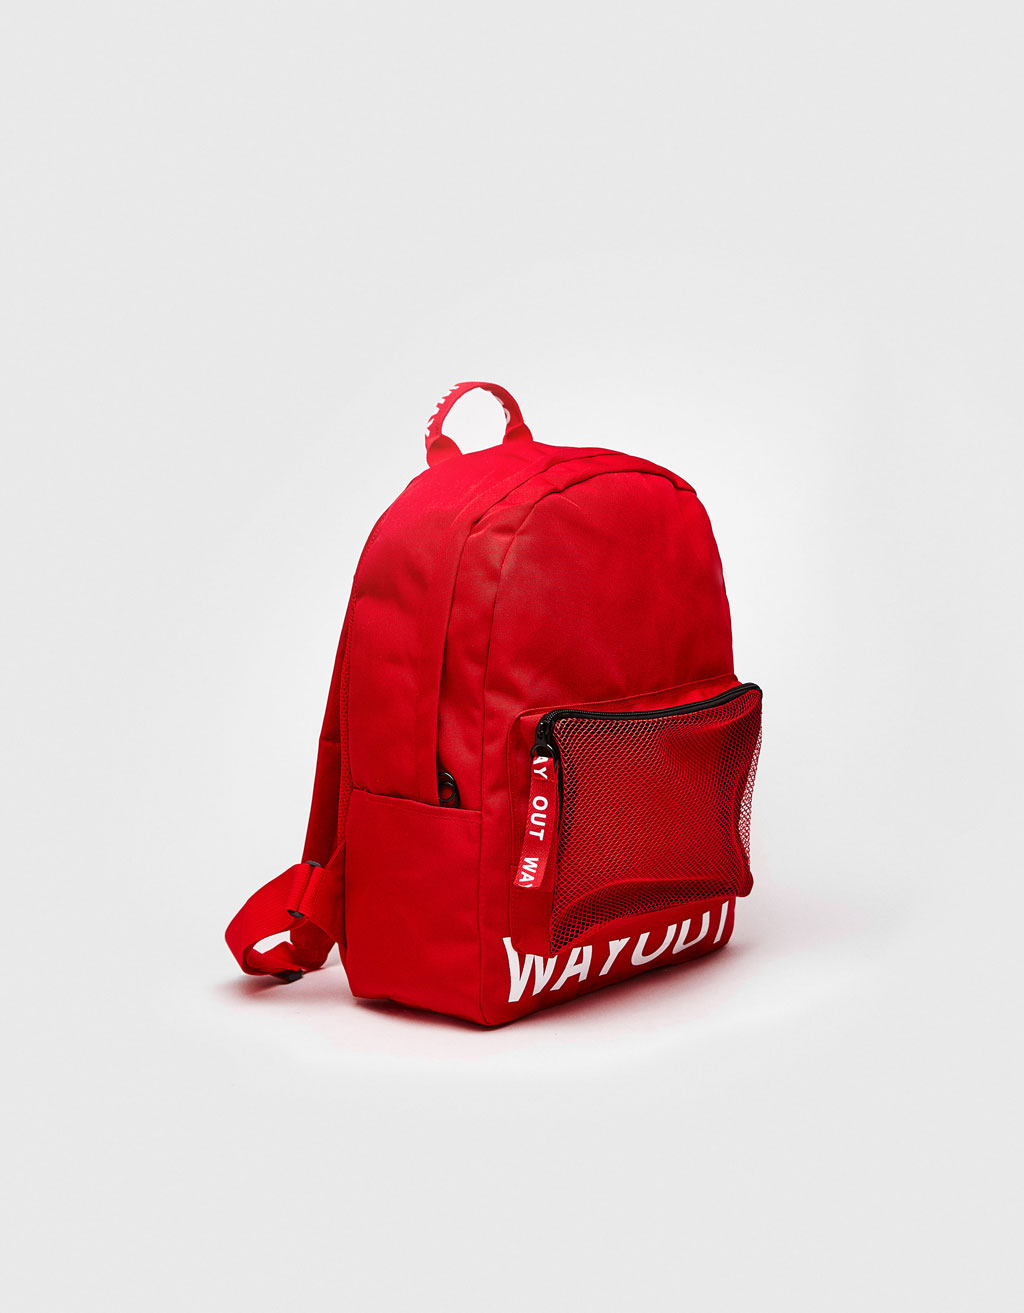 Backpack with slogan